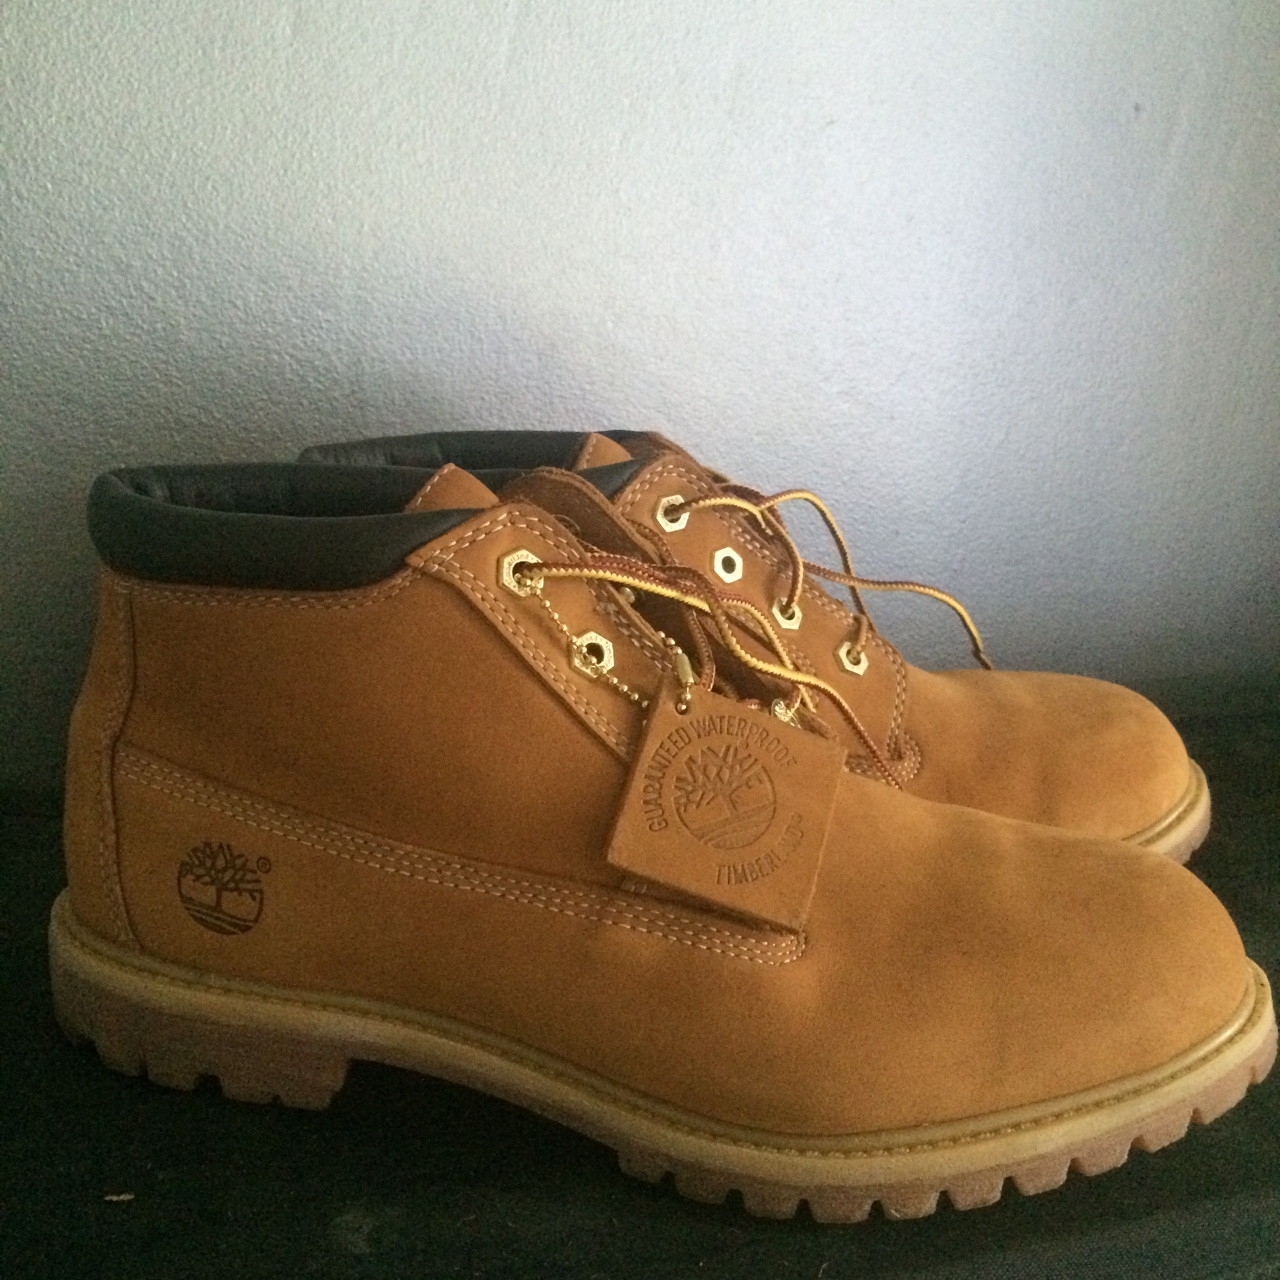 timberland mens low cut boots - 54% OFF